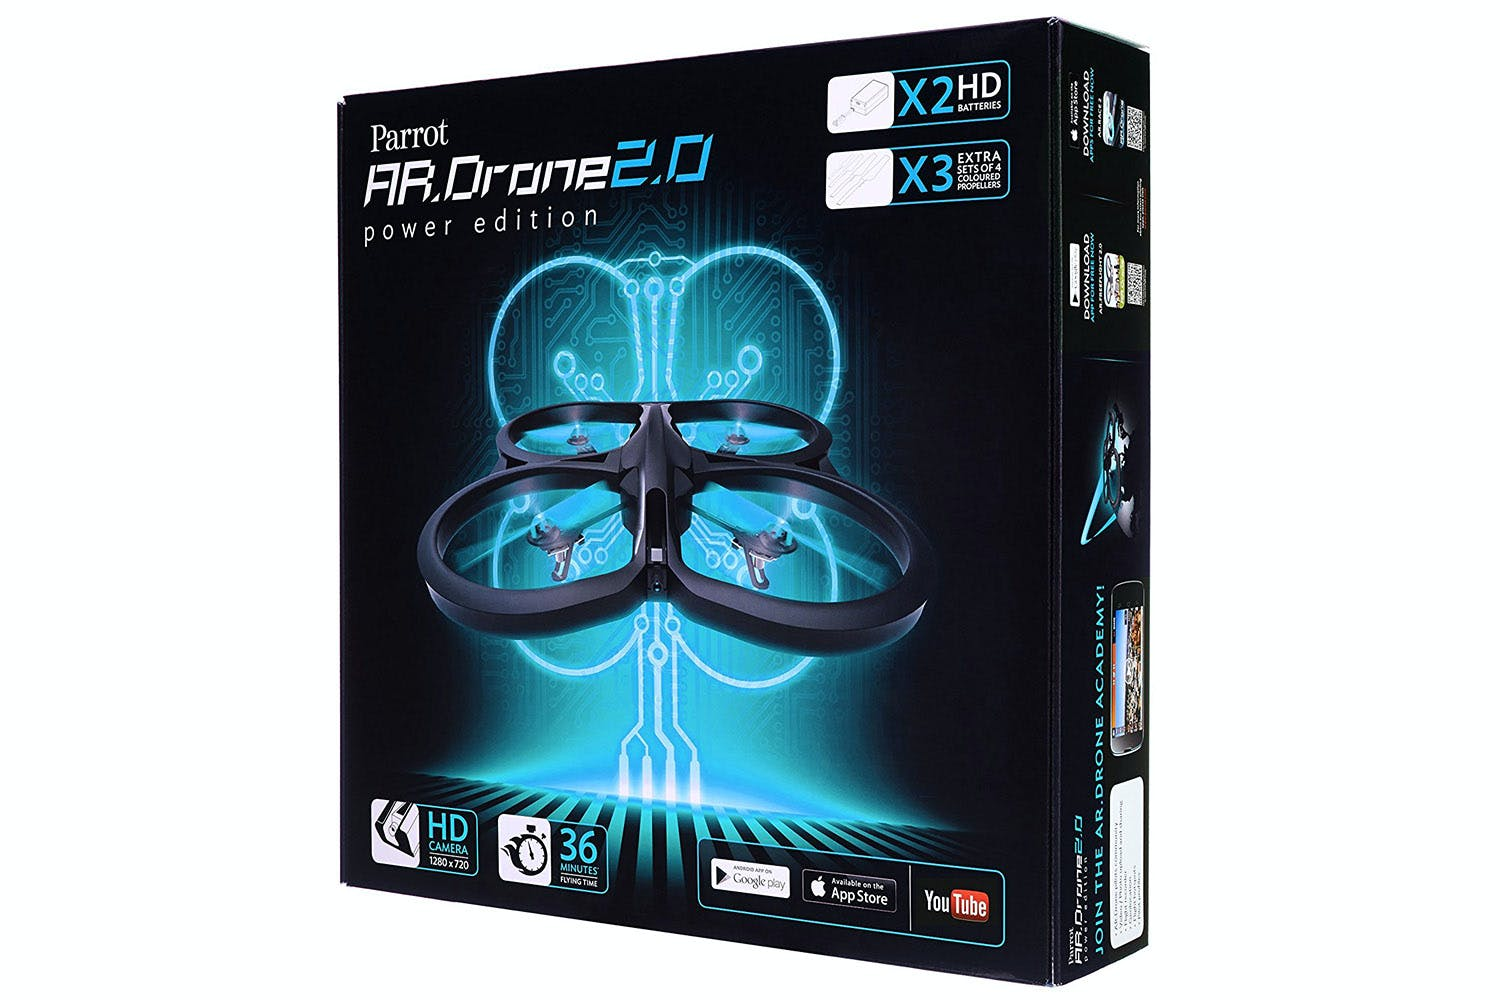 parrot ar drone 2 0 range with Parrot A R  Drone 2 0 Power Edition Turquoise on Appcessories The Perfect Gift For An IPhone Fan With Everything in addition 75852 Parrot Bebop Quadcopter Drone With 14mp Full Hd 1080p Wide Angle Camera also Introducing Parrot Skycontroller likewise ment Augmenter Le Signal Wifi Tp Link moreover Skyrc D100 V2 1s 6s Lipo Acculader.